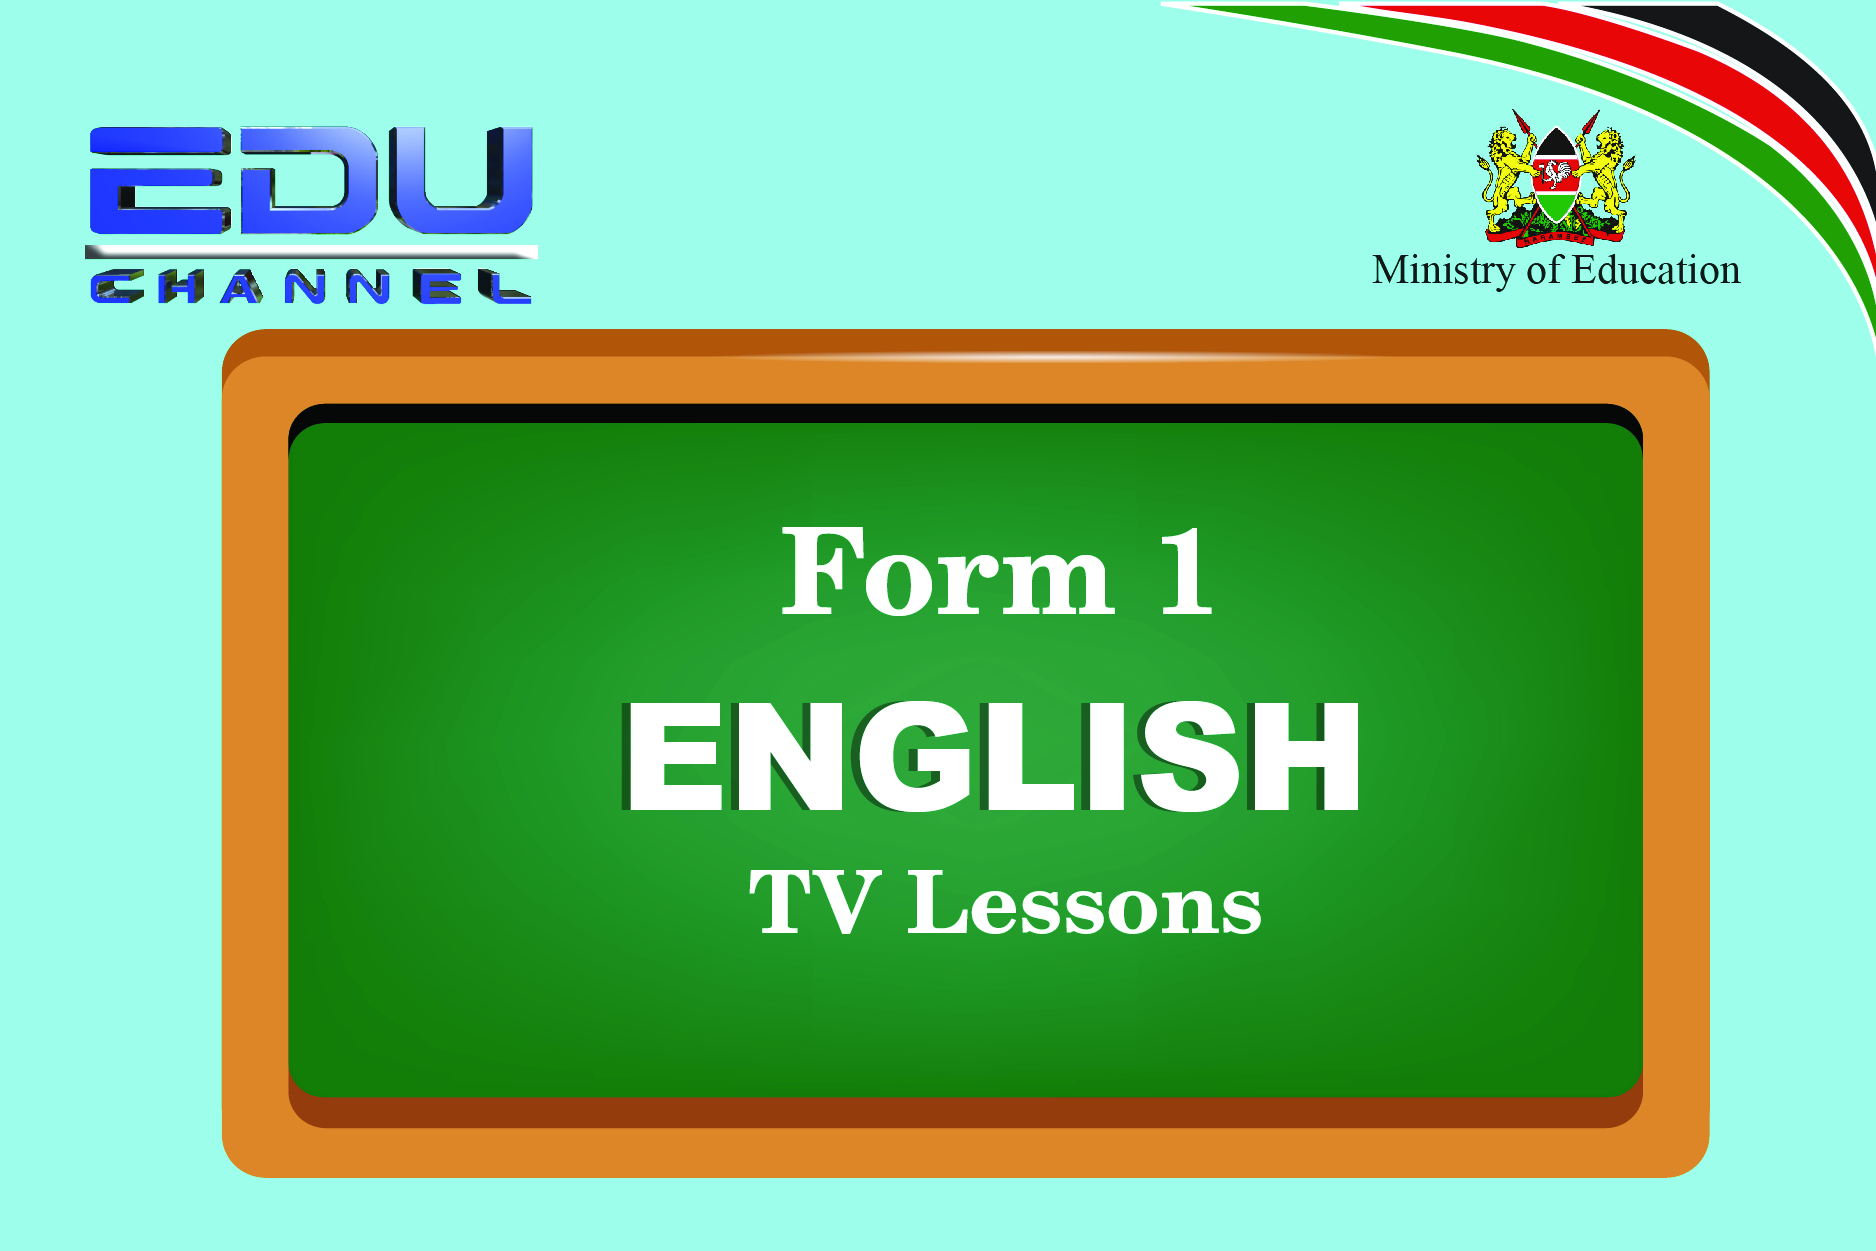 Form 1 English Lesson 3: Indefinite and definite articles